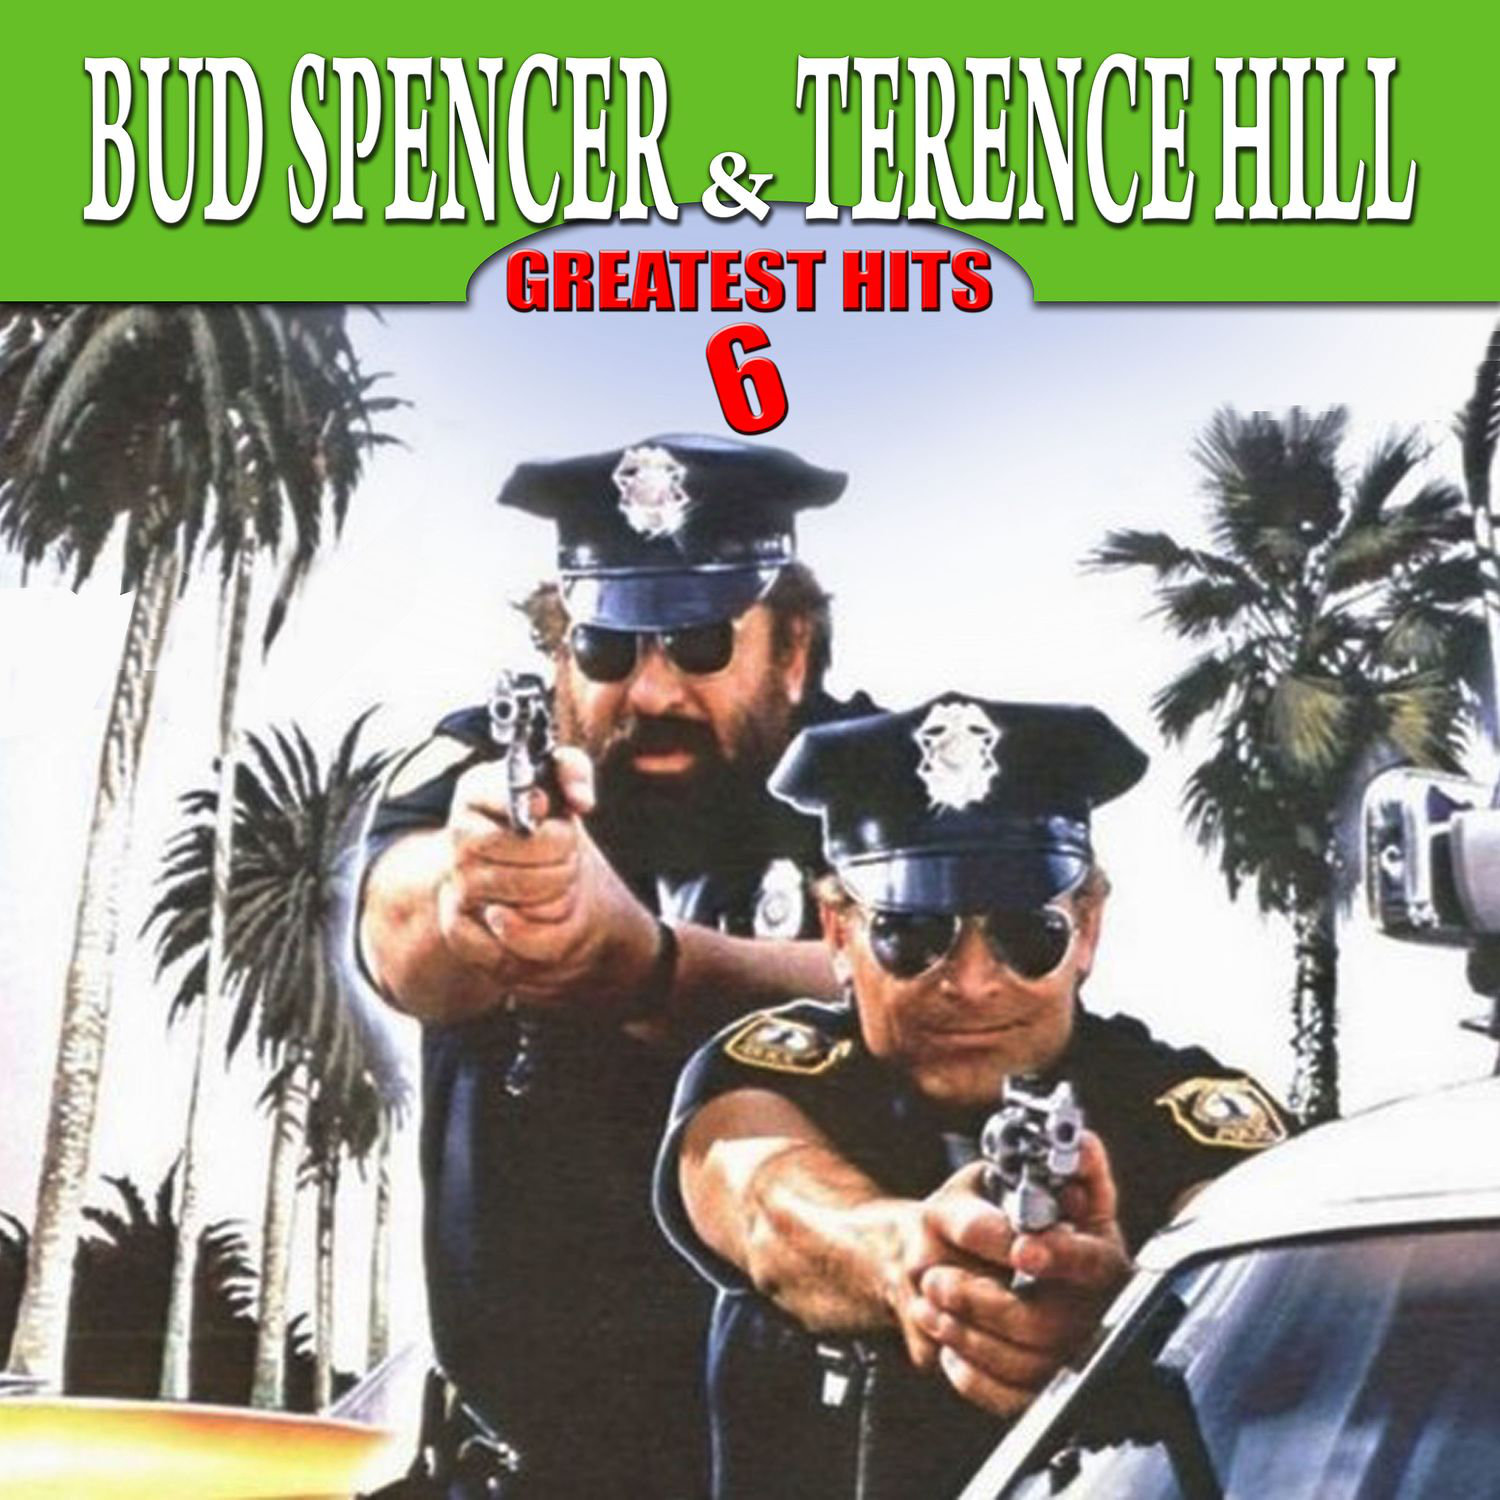 bud spencer terence hill greatest hits vol 6. Black Bedroom Furniture Sets. Home Design Ideas